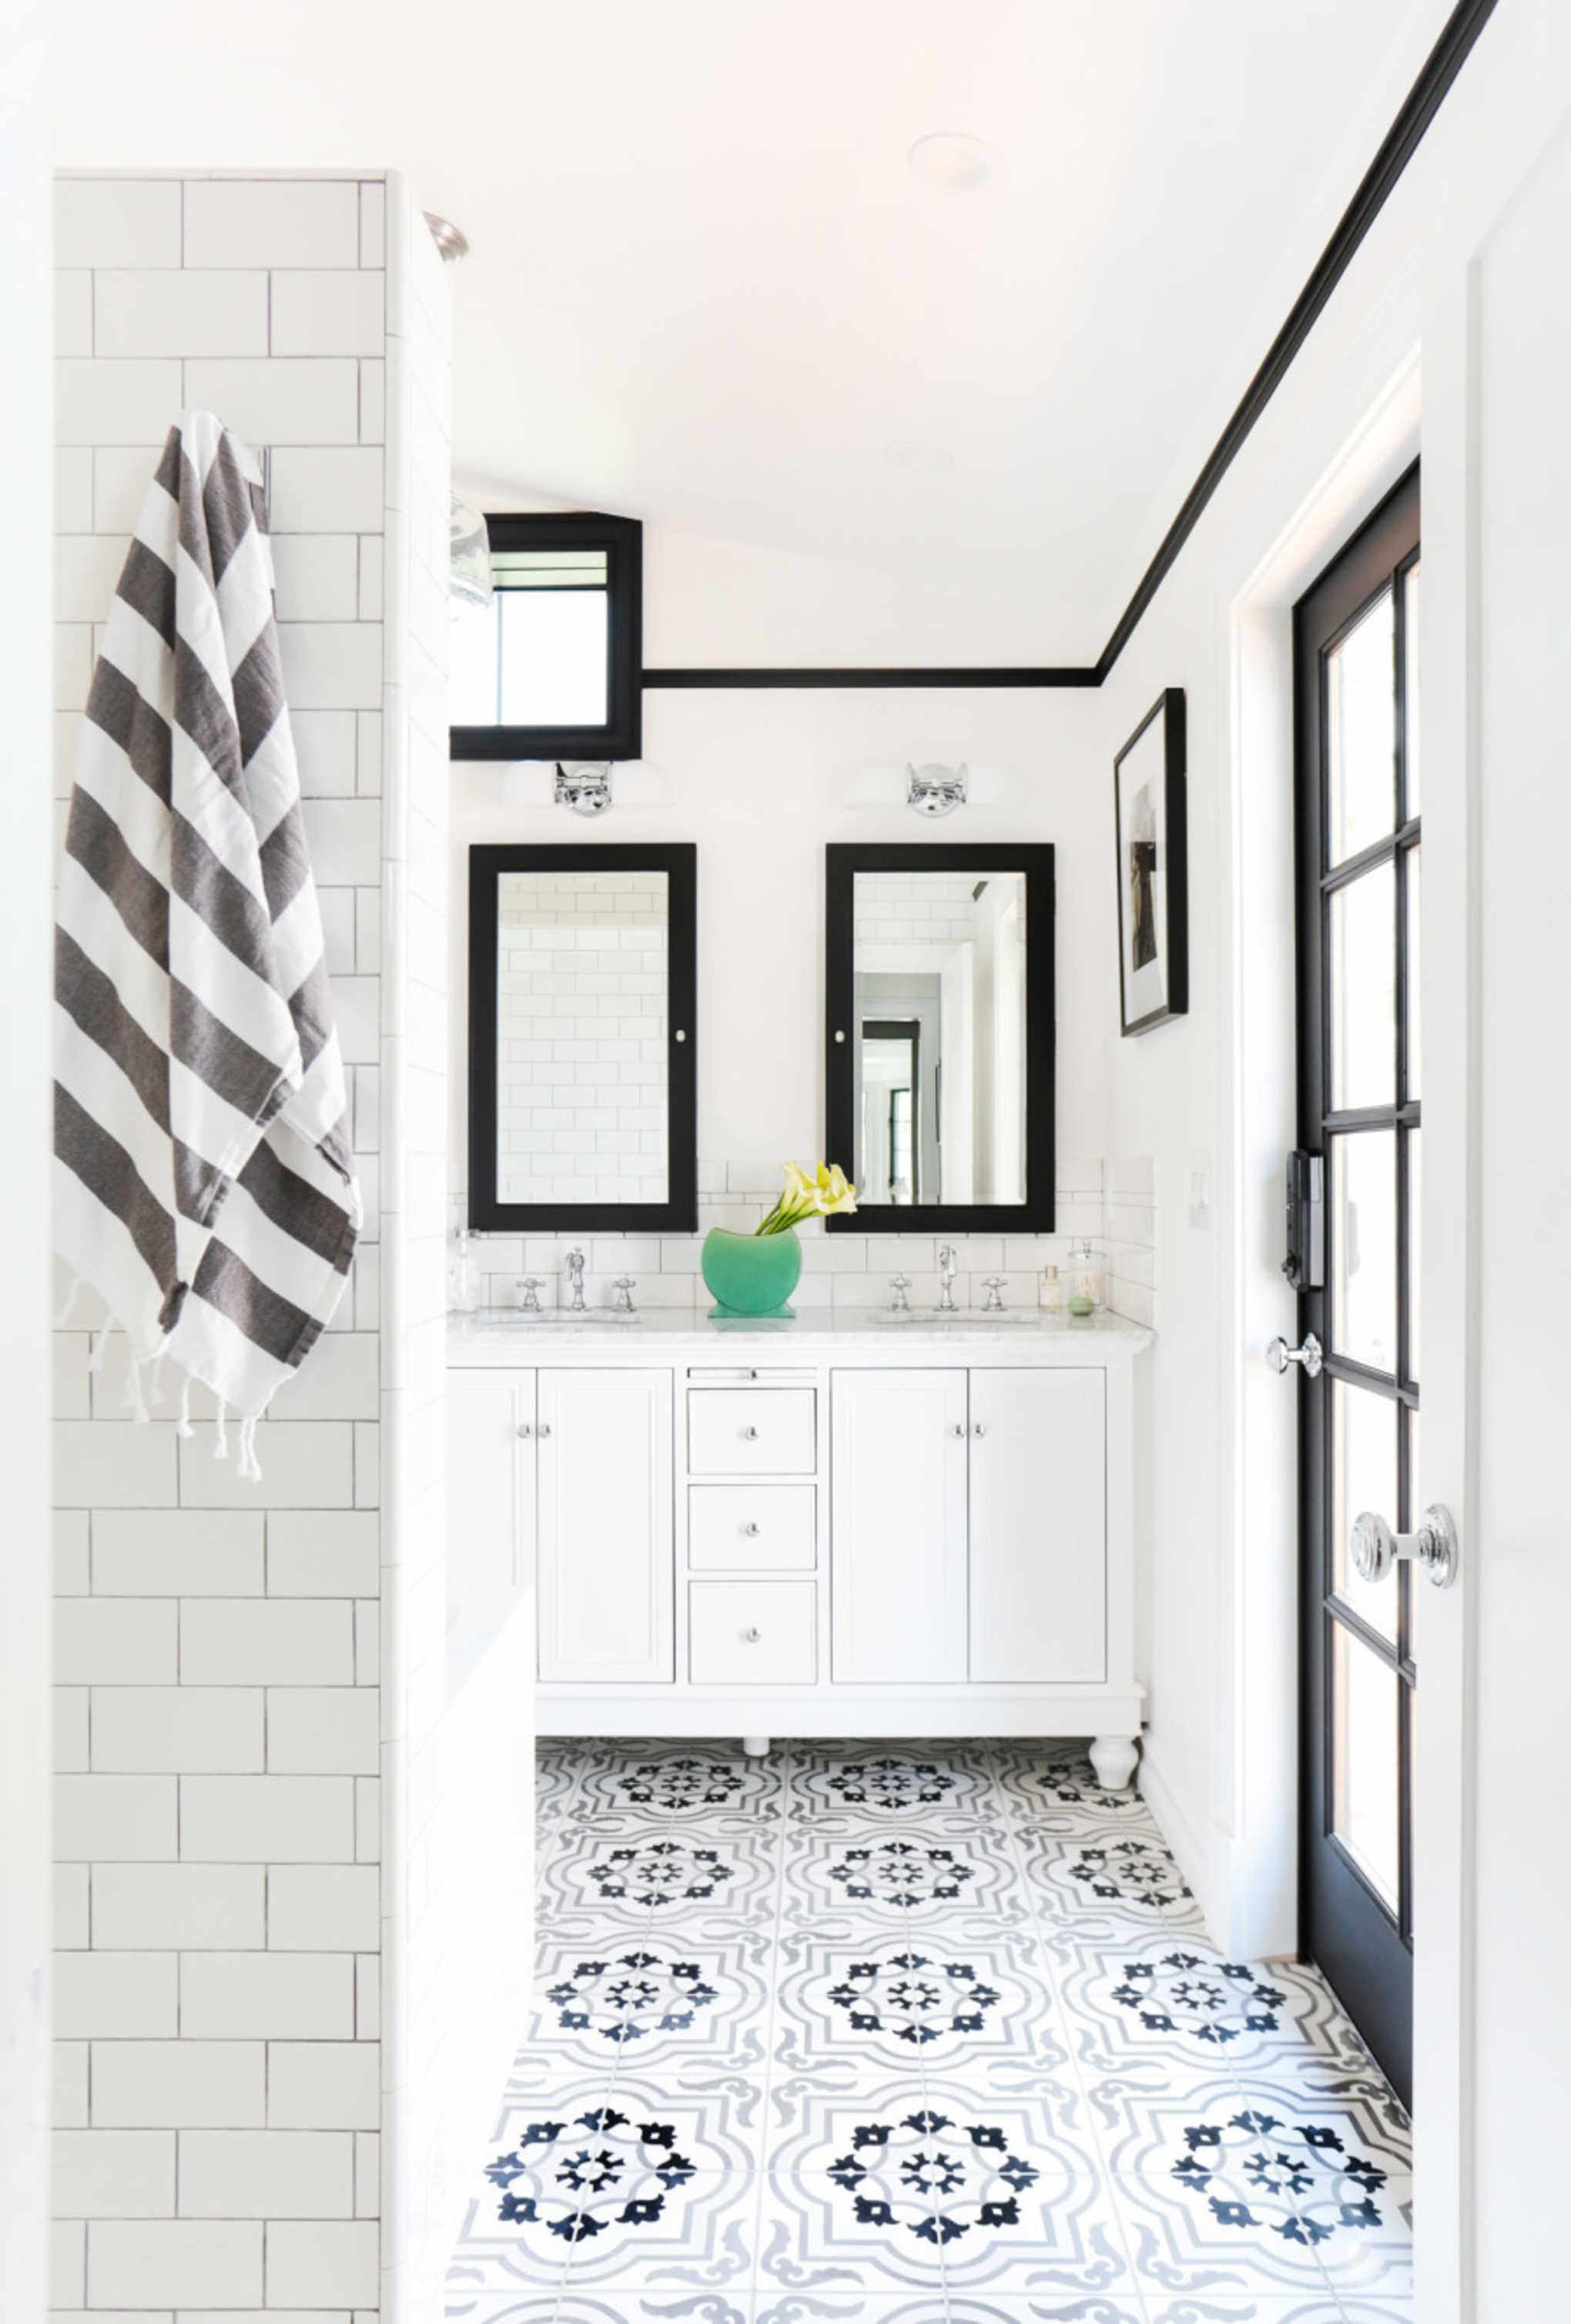 5 Design Tips For The Cement Tile Trend On GrayMalin.com